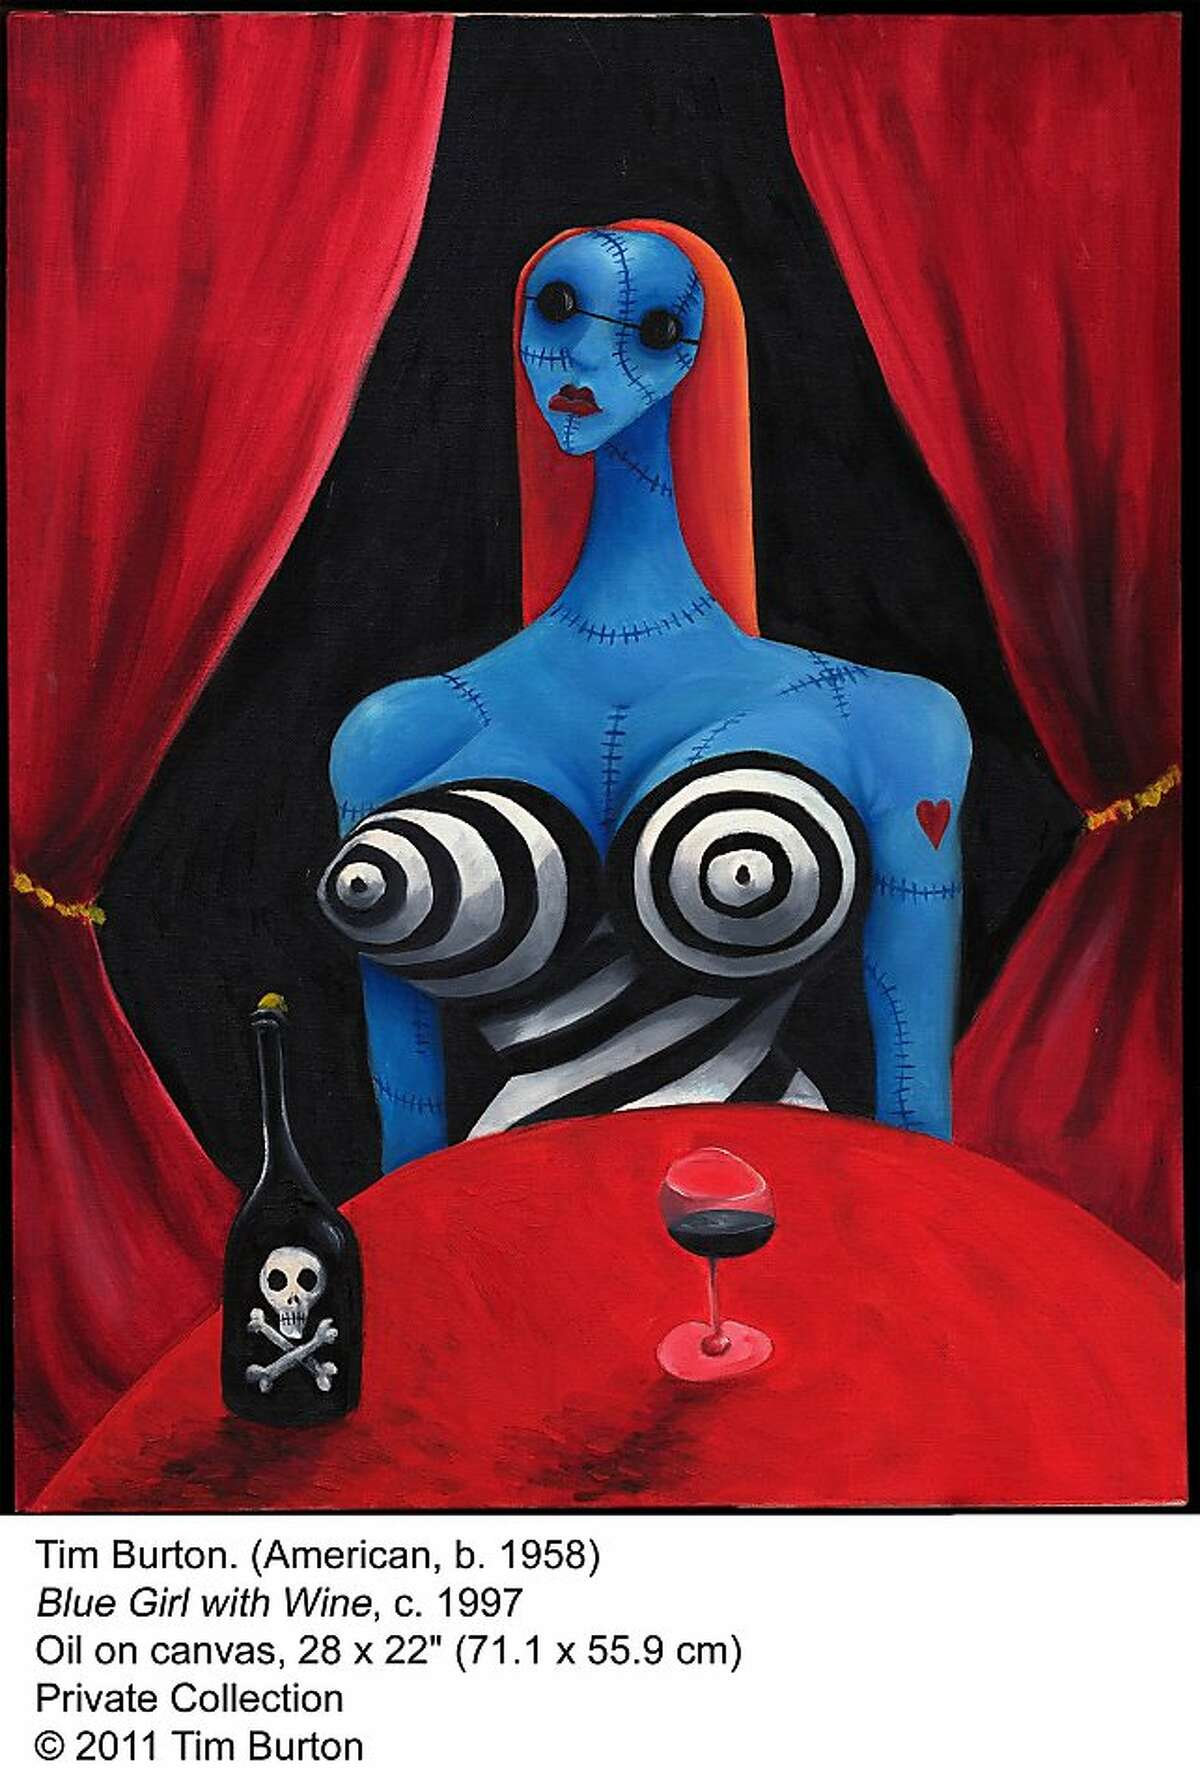 Tim Burton's Blue Girl With Wine is on display with other works by the artist/filmmaker at the Los Angeles County Museum of Art.